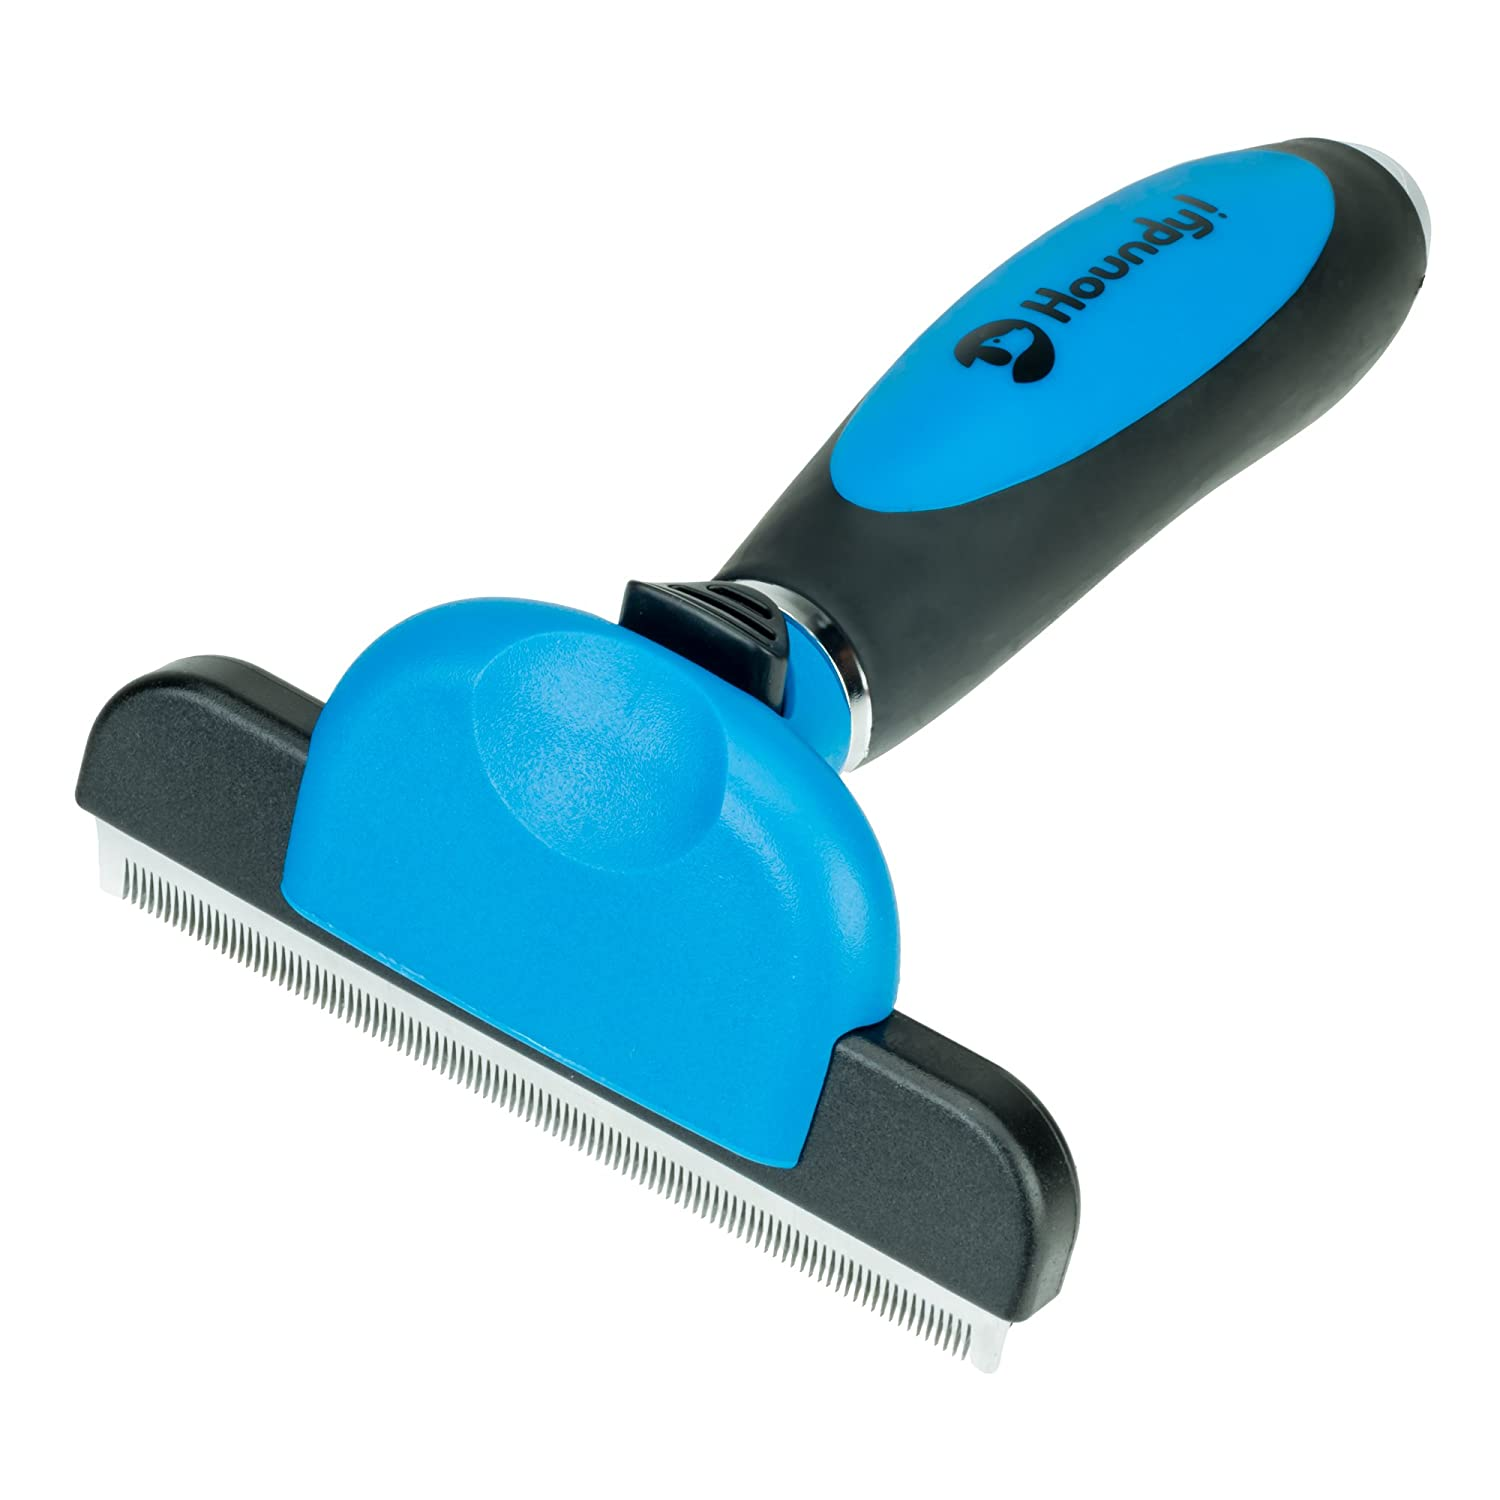 Large Houndy  Professional Pet Deshedder and Grooming Brush for Dogs and Cats, Dramatically Reduces Shedding by up to 95%. Upgraded Dog Brush with Fur Ejector and Ergonomic Handle for Medium and Large Pets.